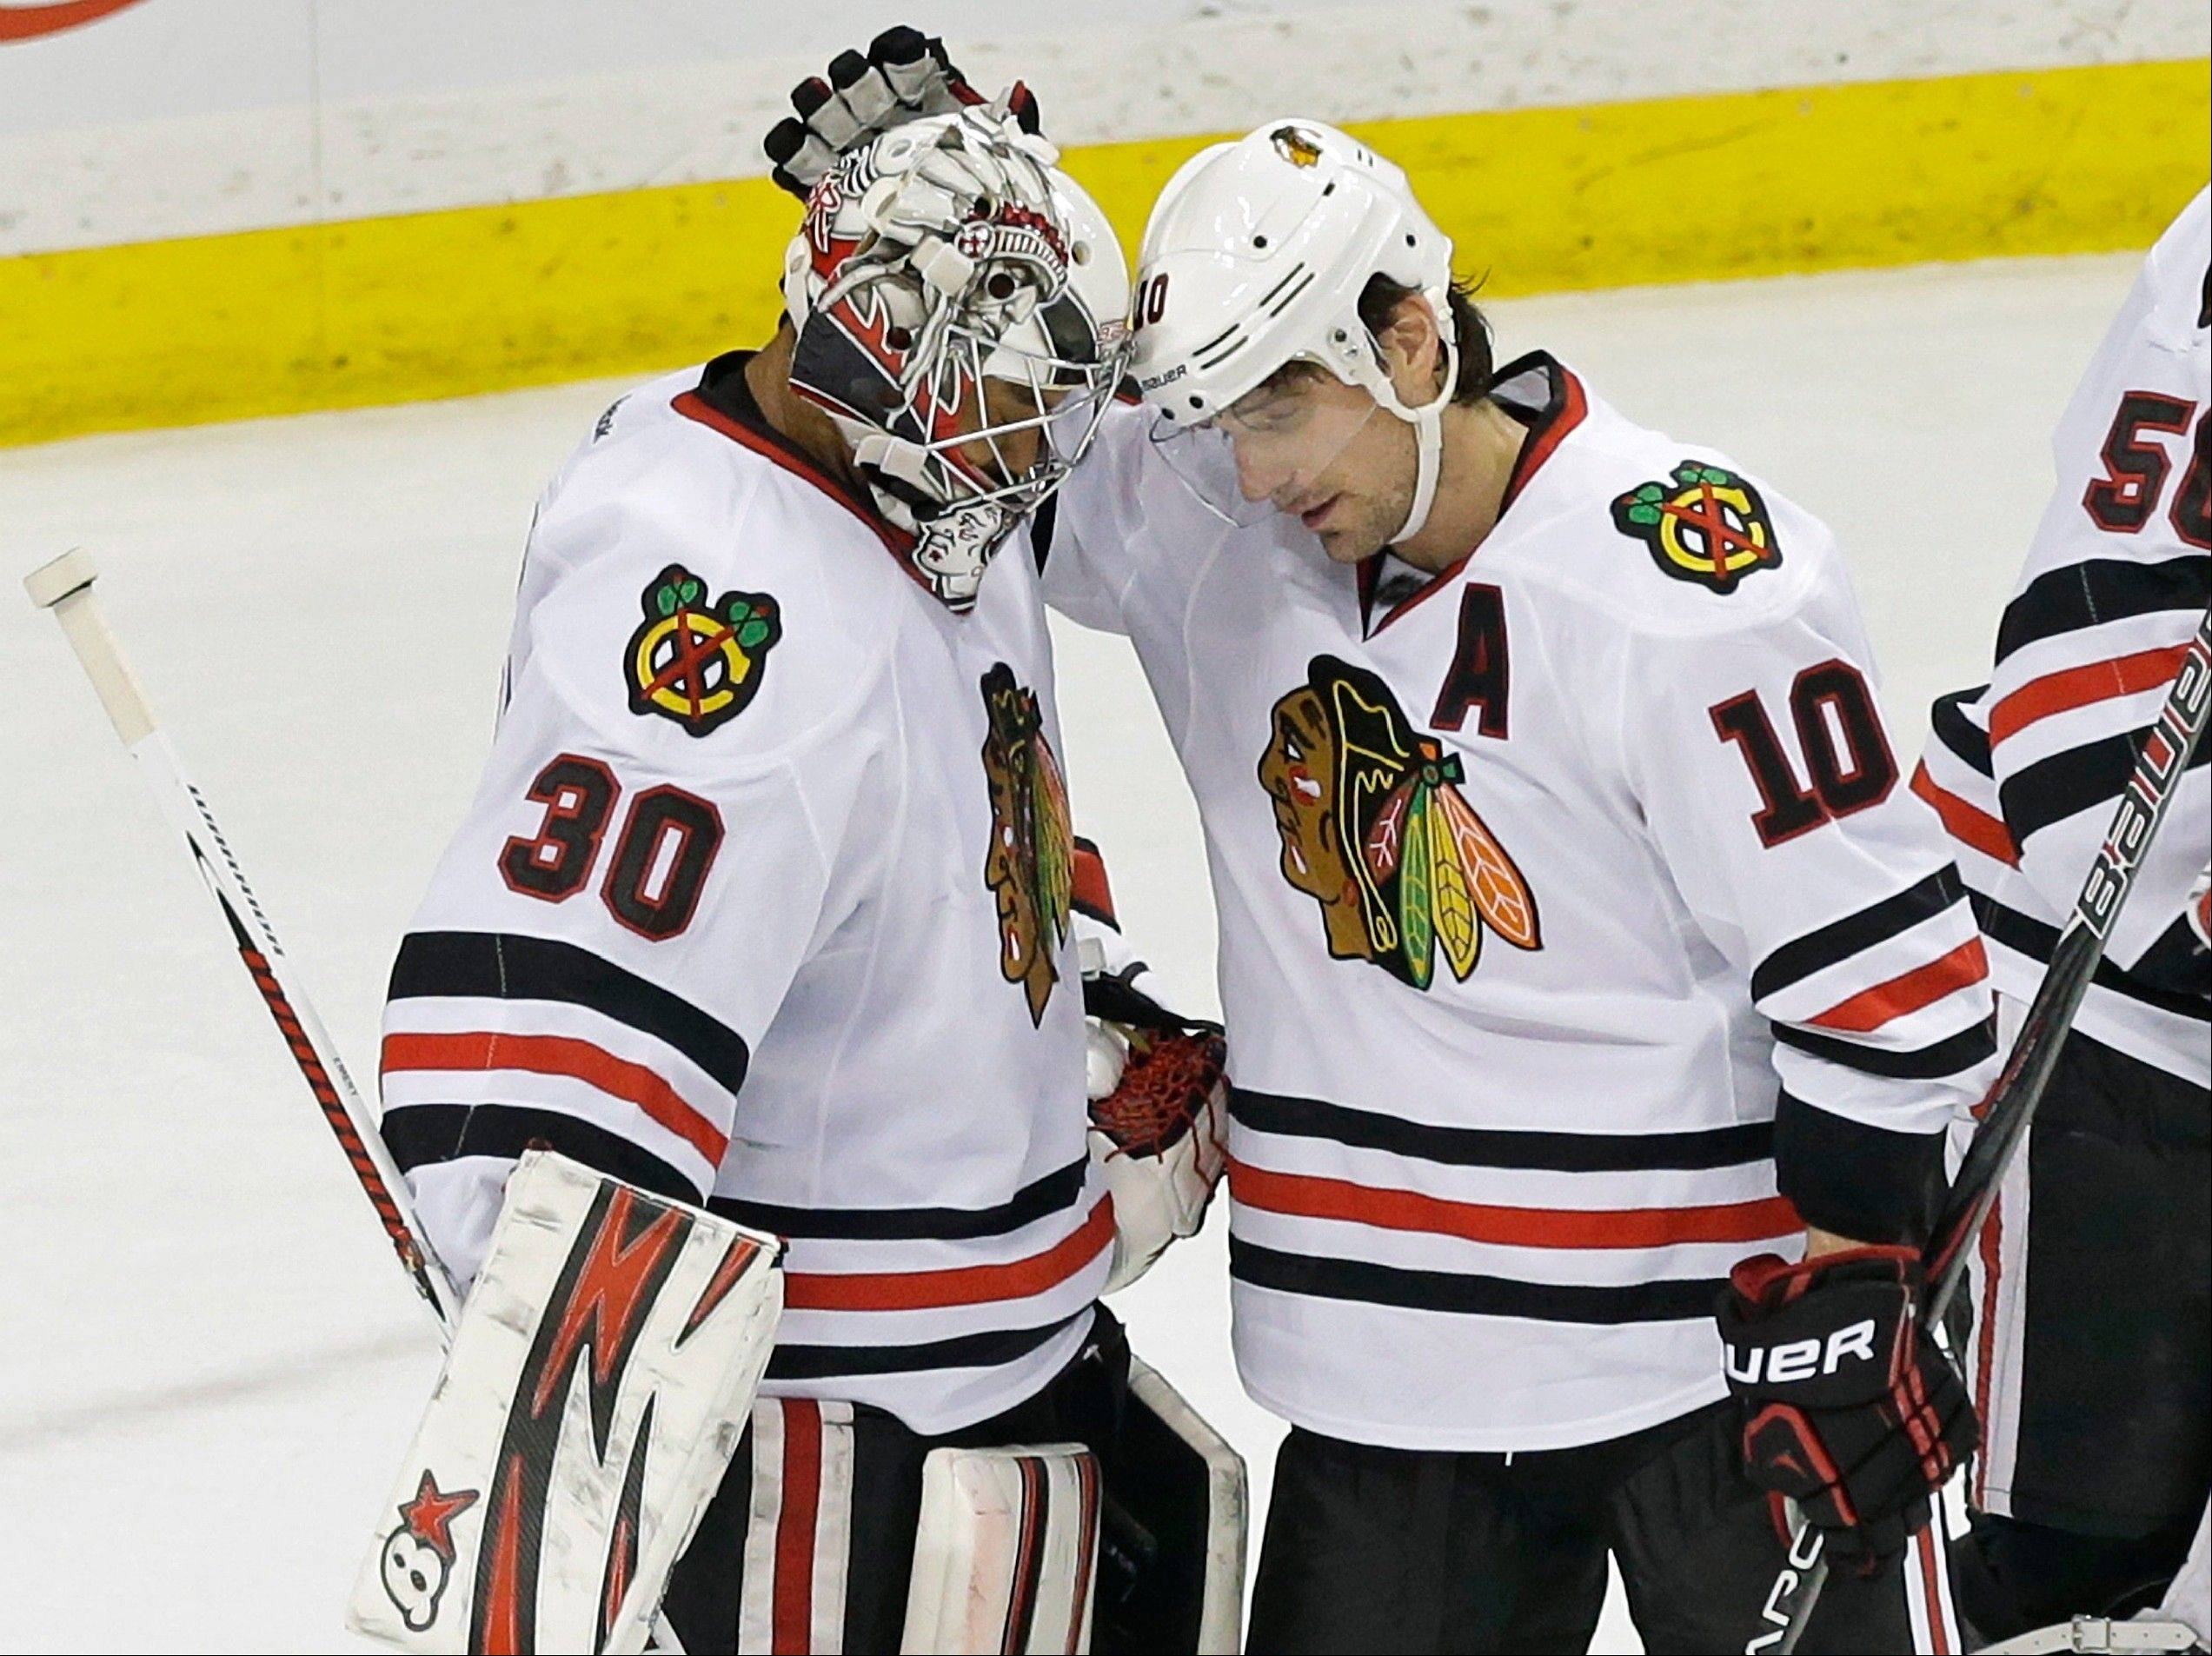 Patrick Sharp, right, congratulates goalie Ray Emery after he shut out the Minnesota Wild on Tuesday.